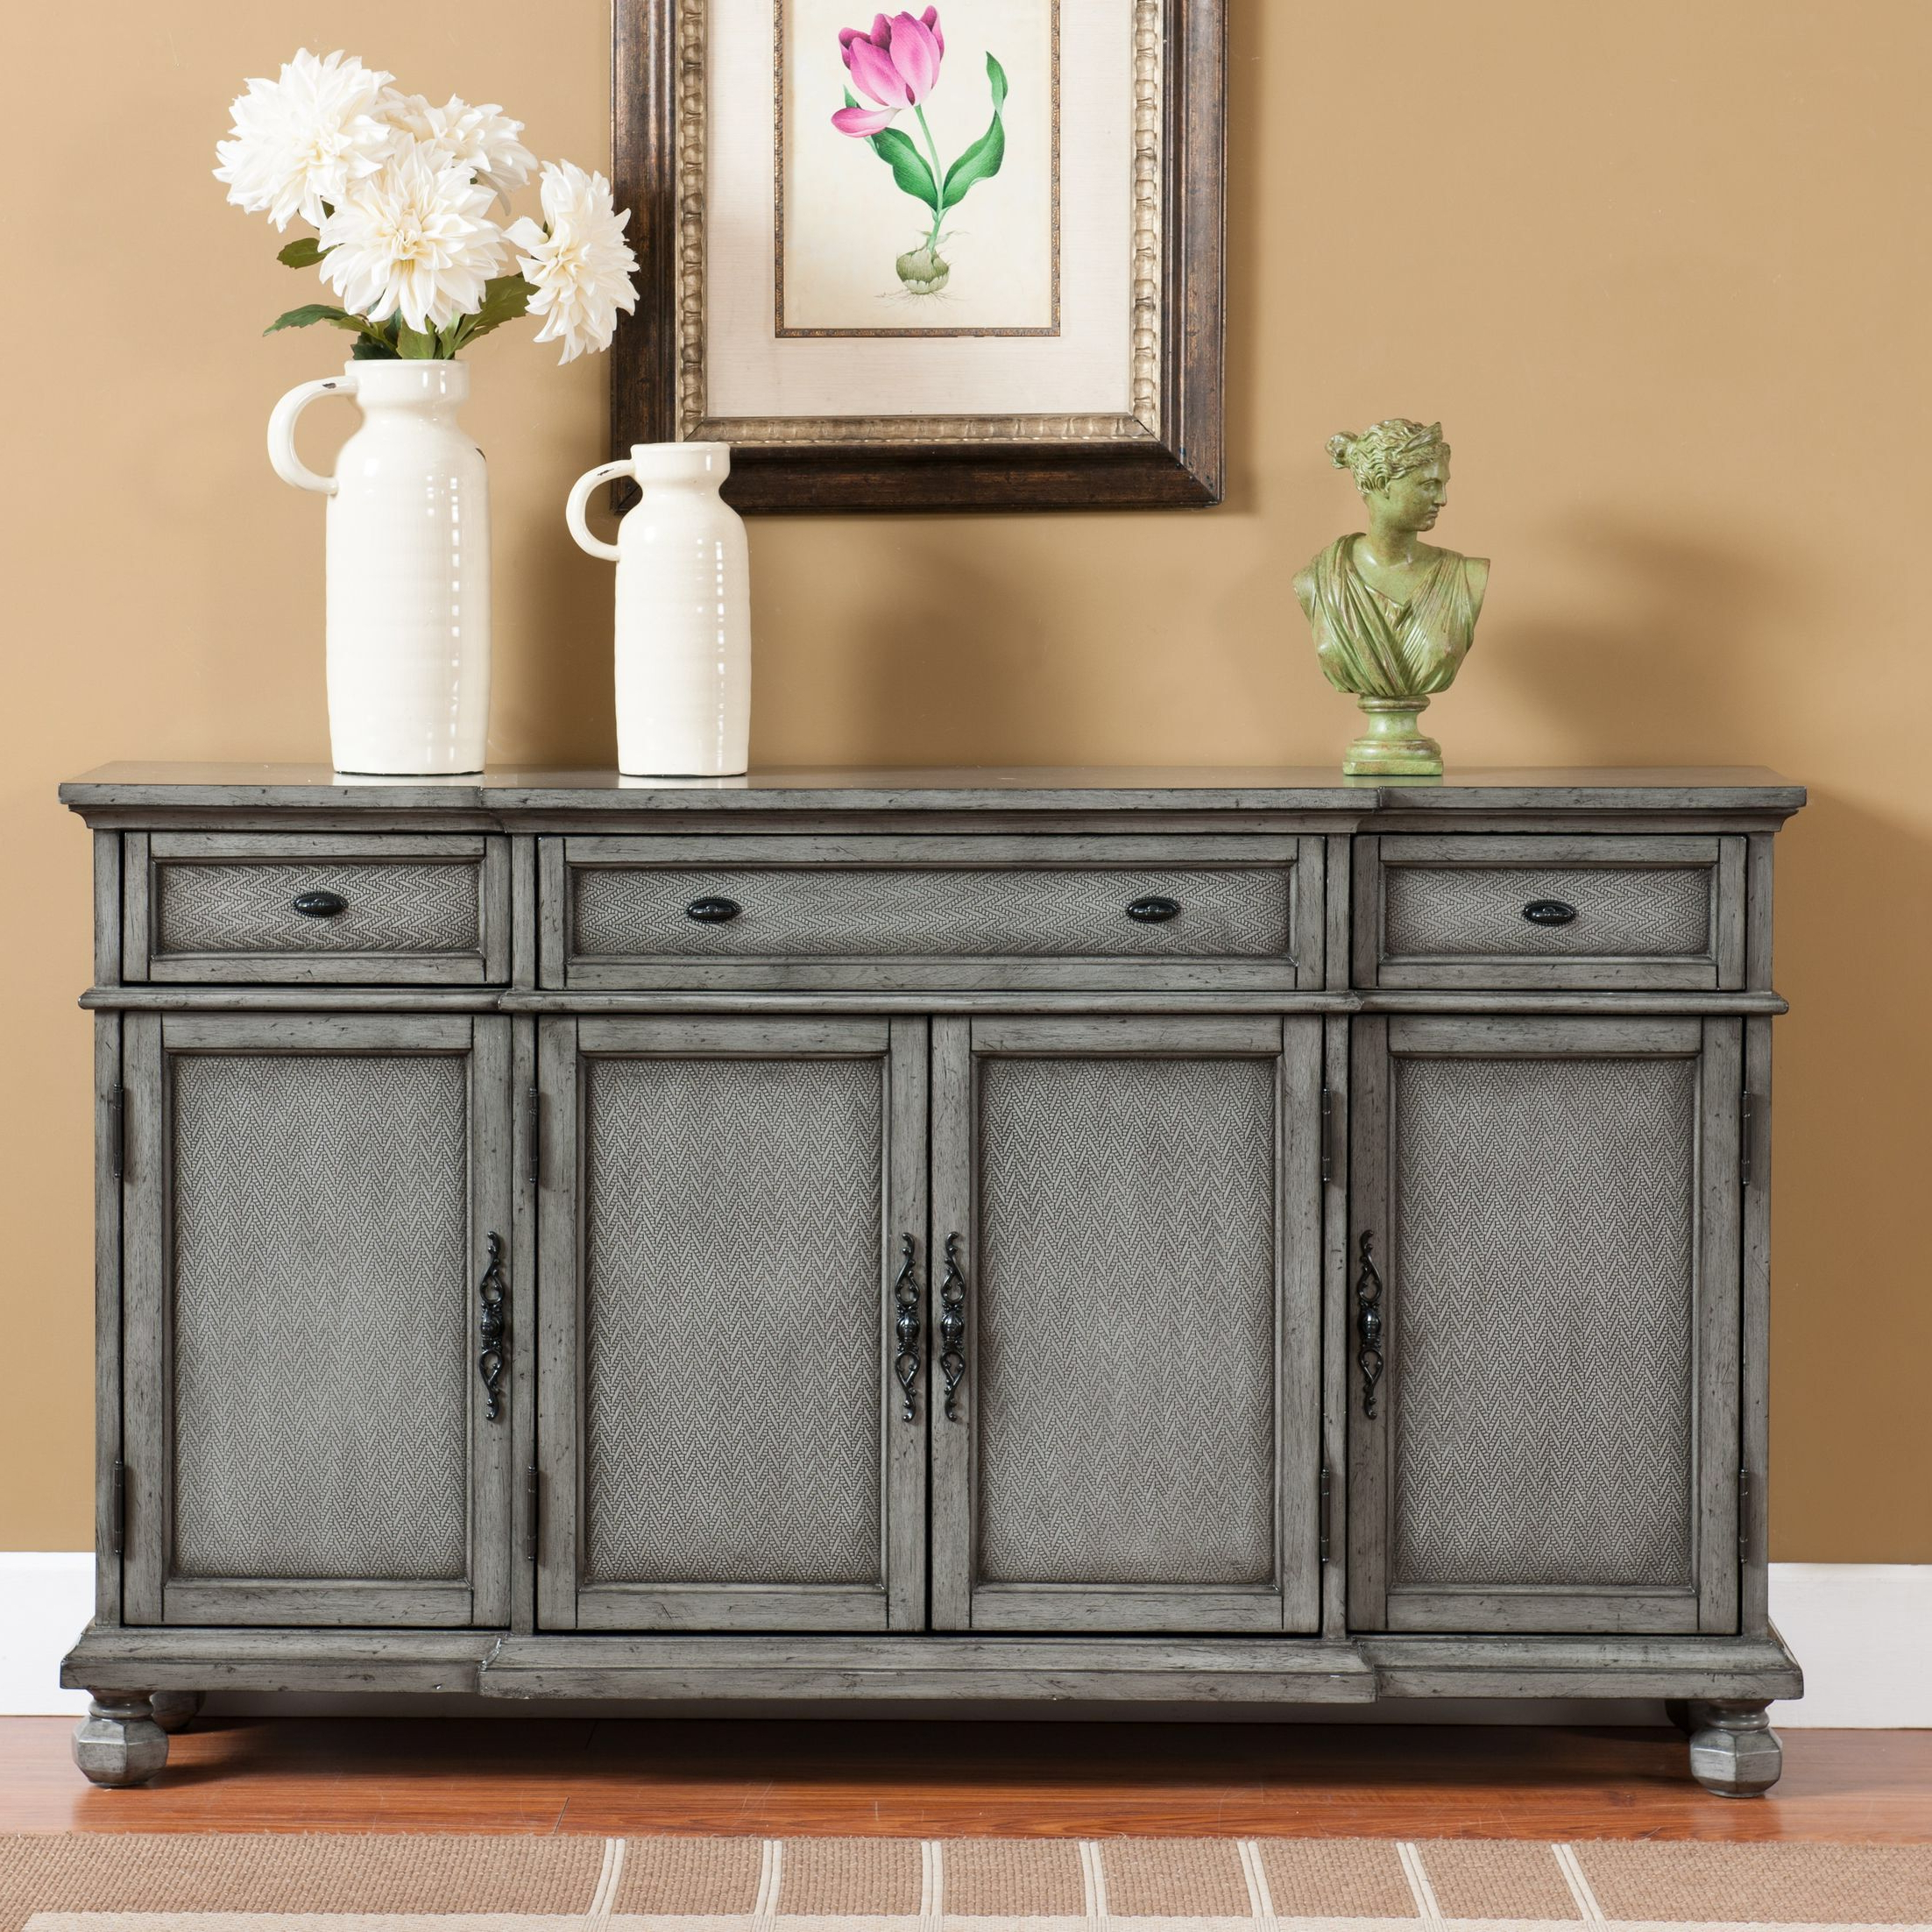 Giulia 3 Drawer Credenza | Tables & Chairs | Credenza Intended For Giulia 3 Drawer Credenzas (Gallery 3 of 20)